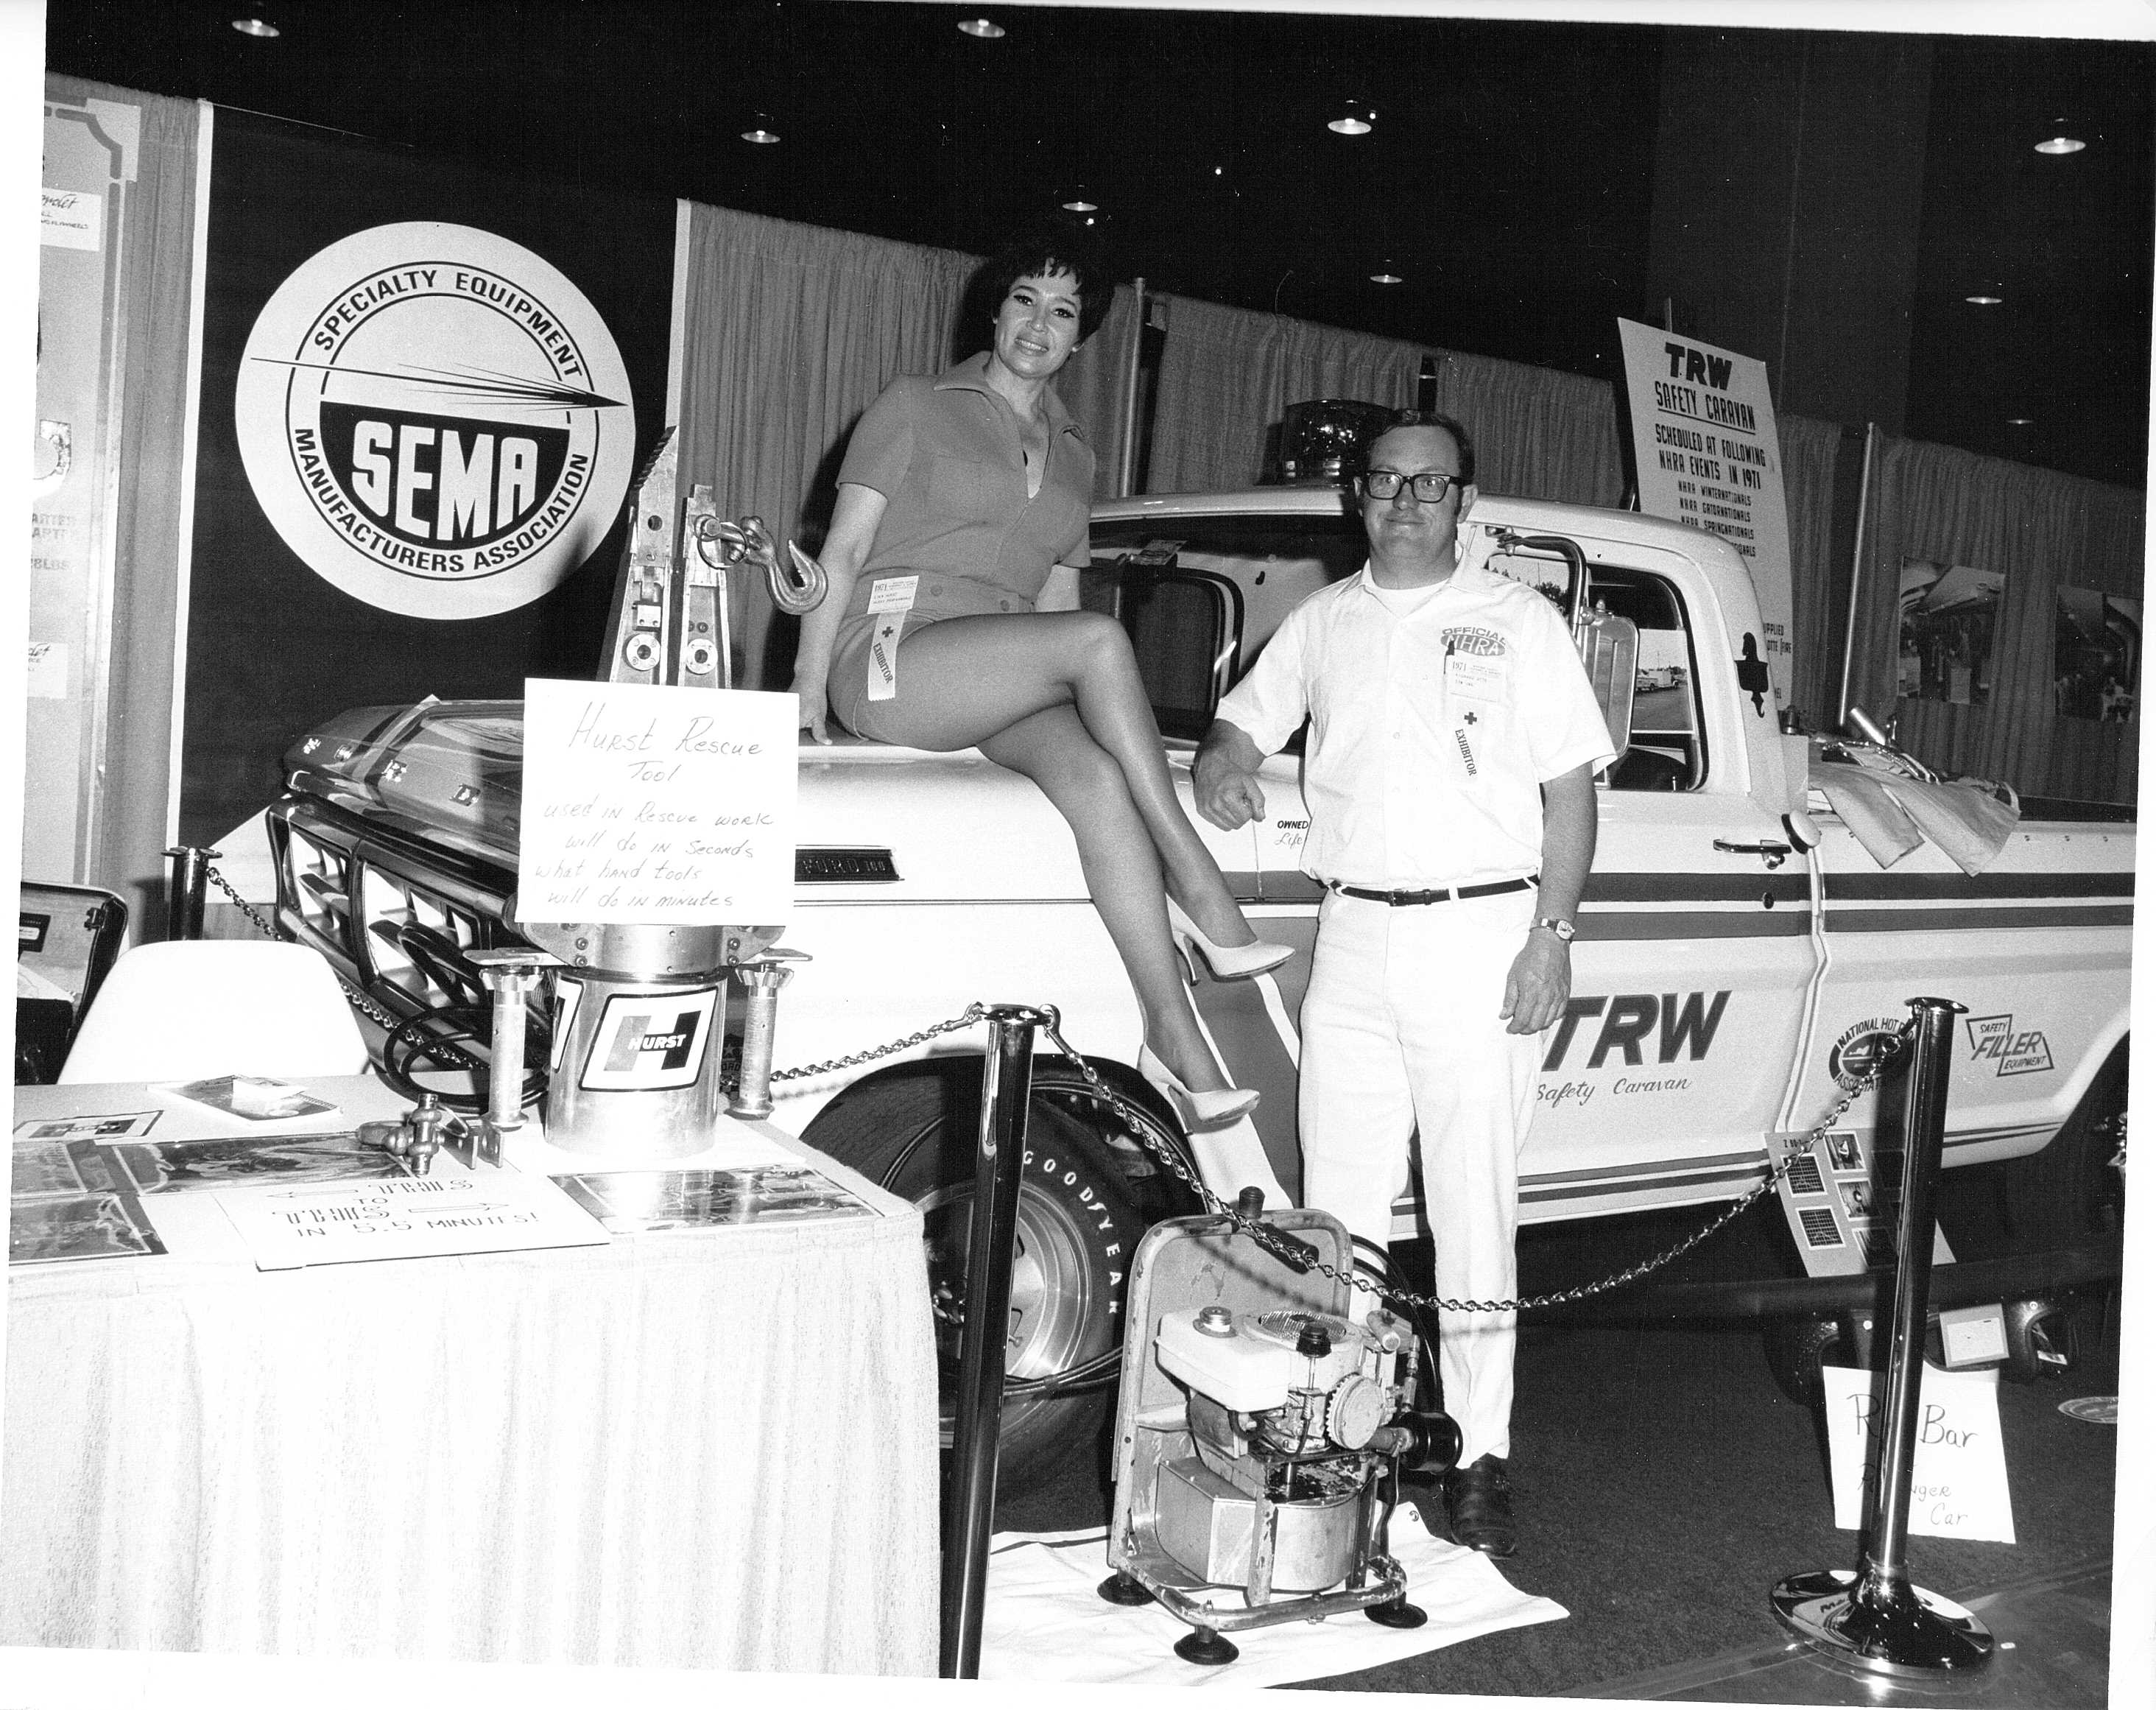 The first public introduction of the Jaws of Life (then called the Hurst Power Tool) at the 1971 SEMA trade show in California. Pictured here is Dick Otte (with possible George Hurst's wife?) The booth featured the TRW Caravan.